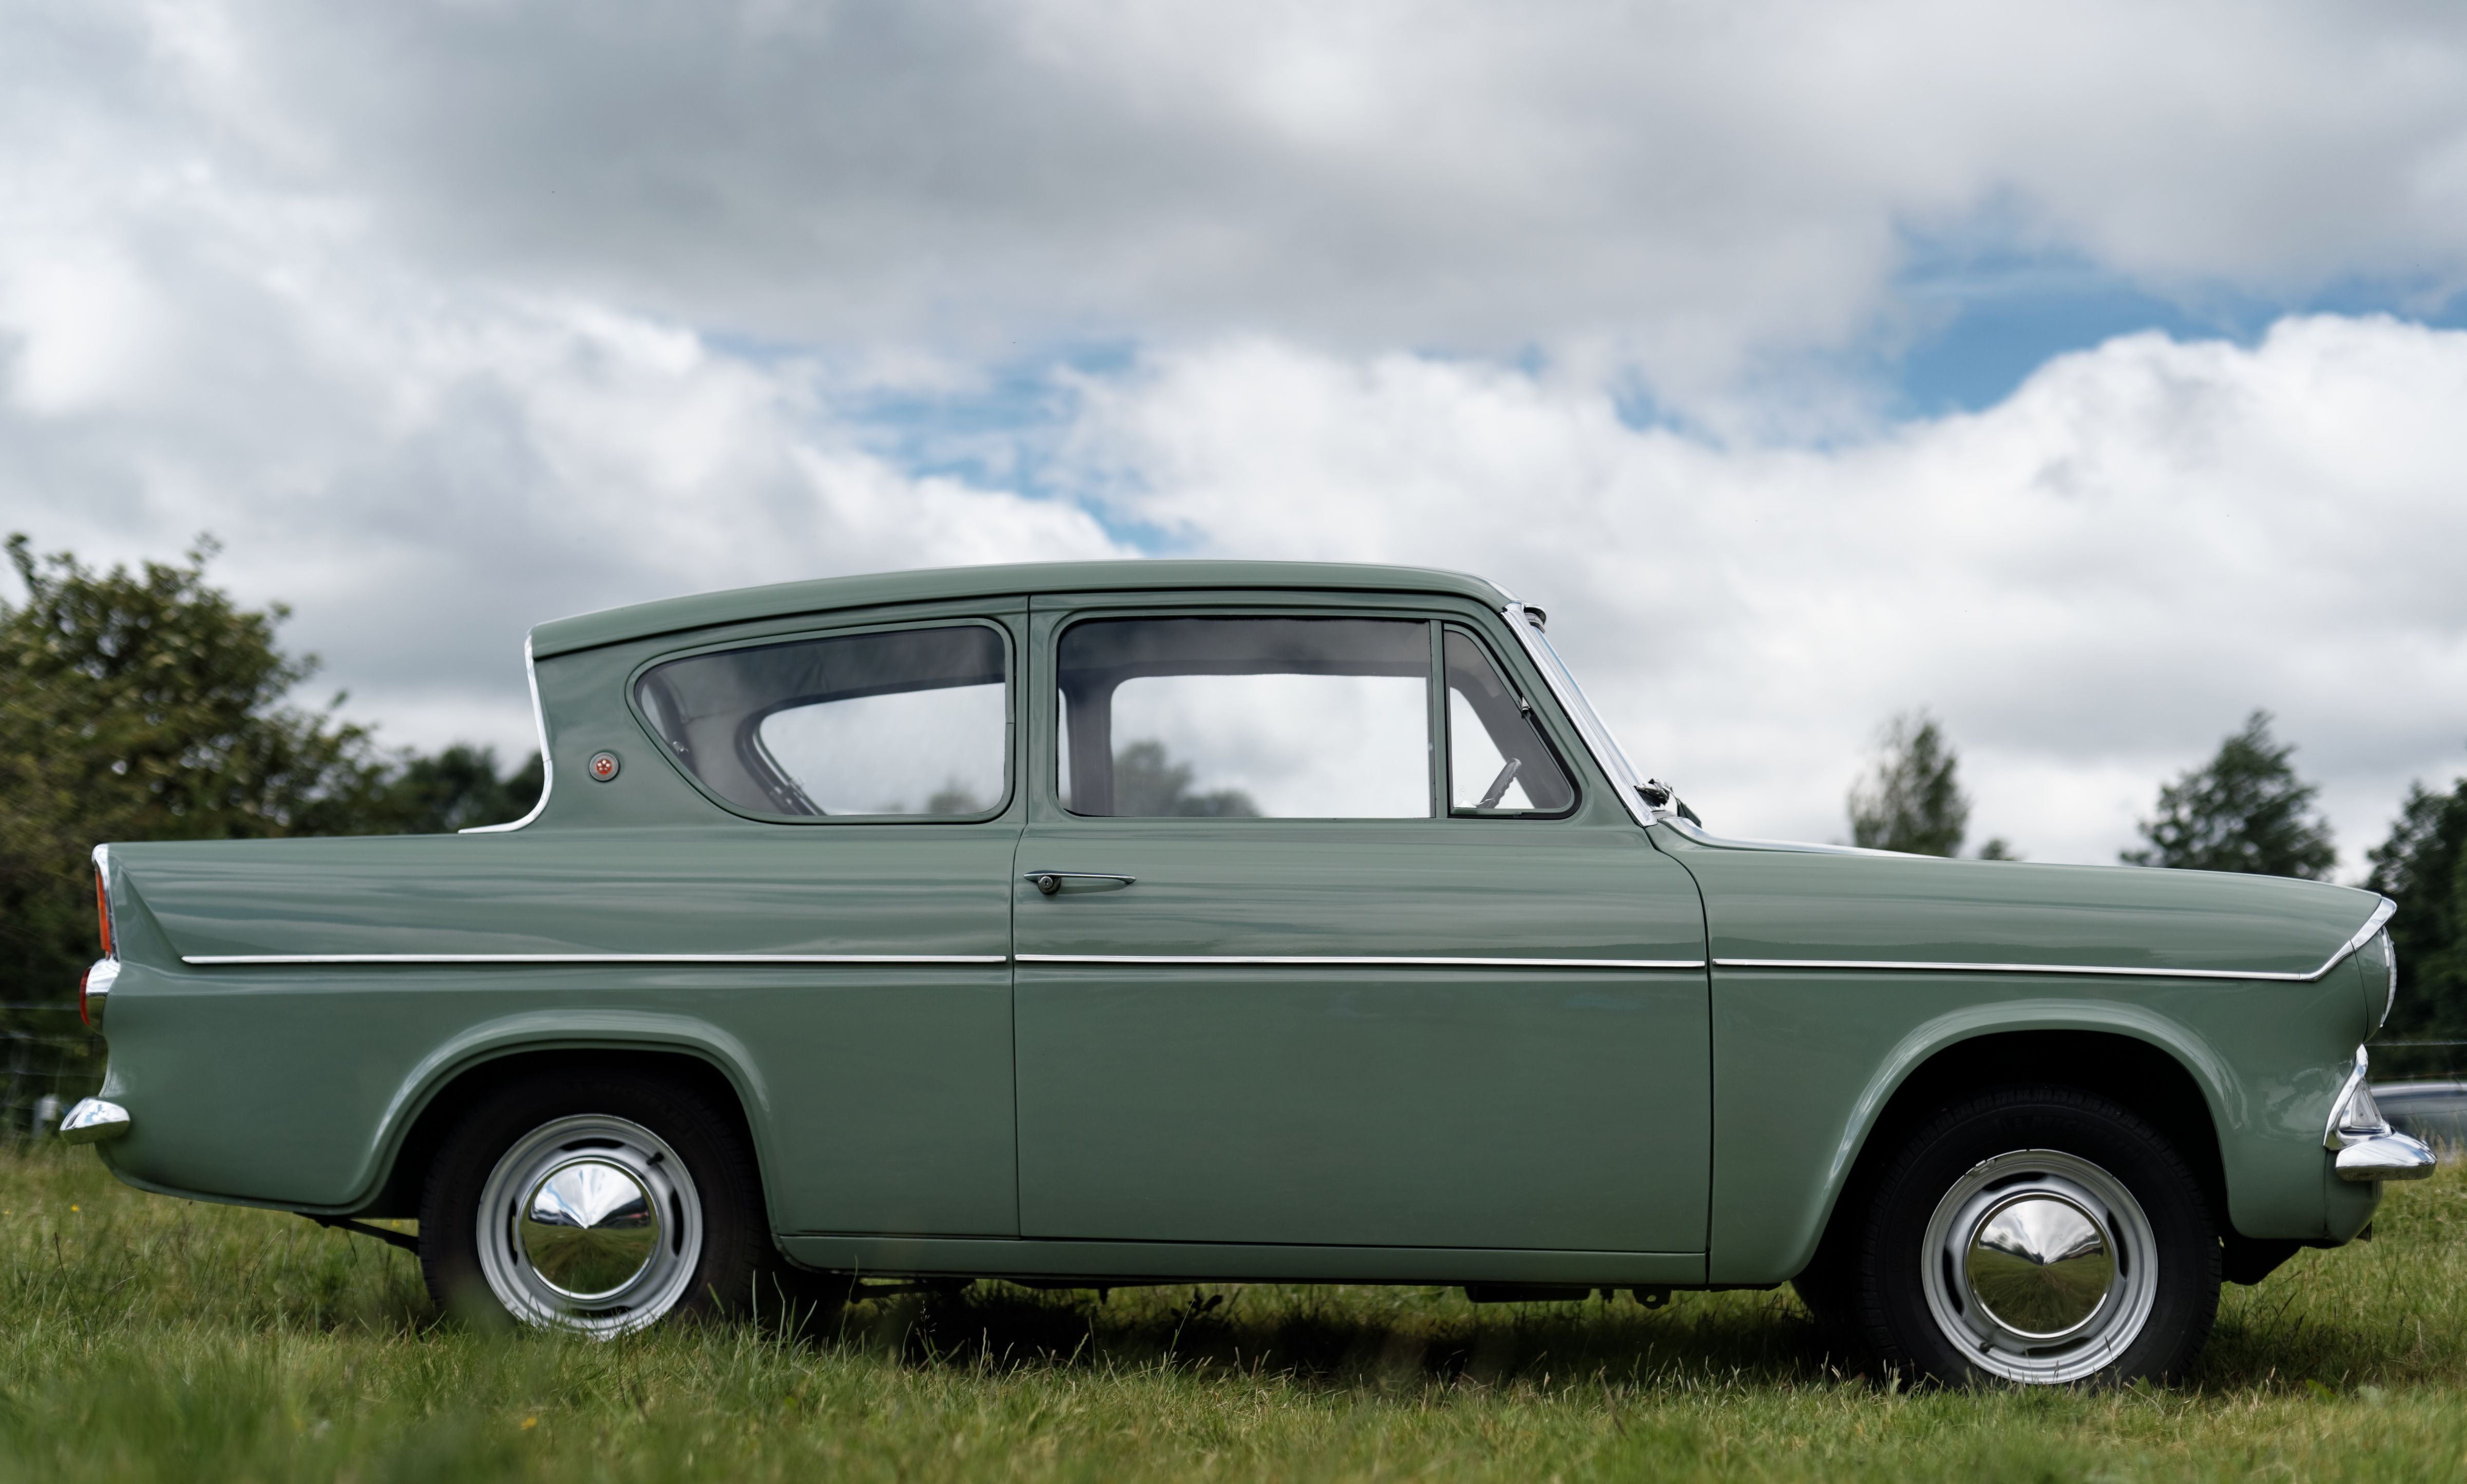 Car 77 richard sprigg ford anglia 105e coches de siempre pinterest ford and cars